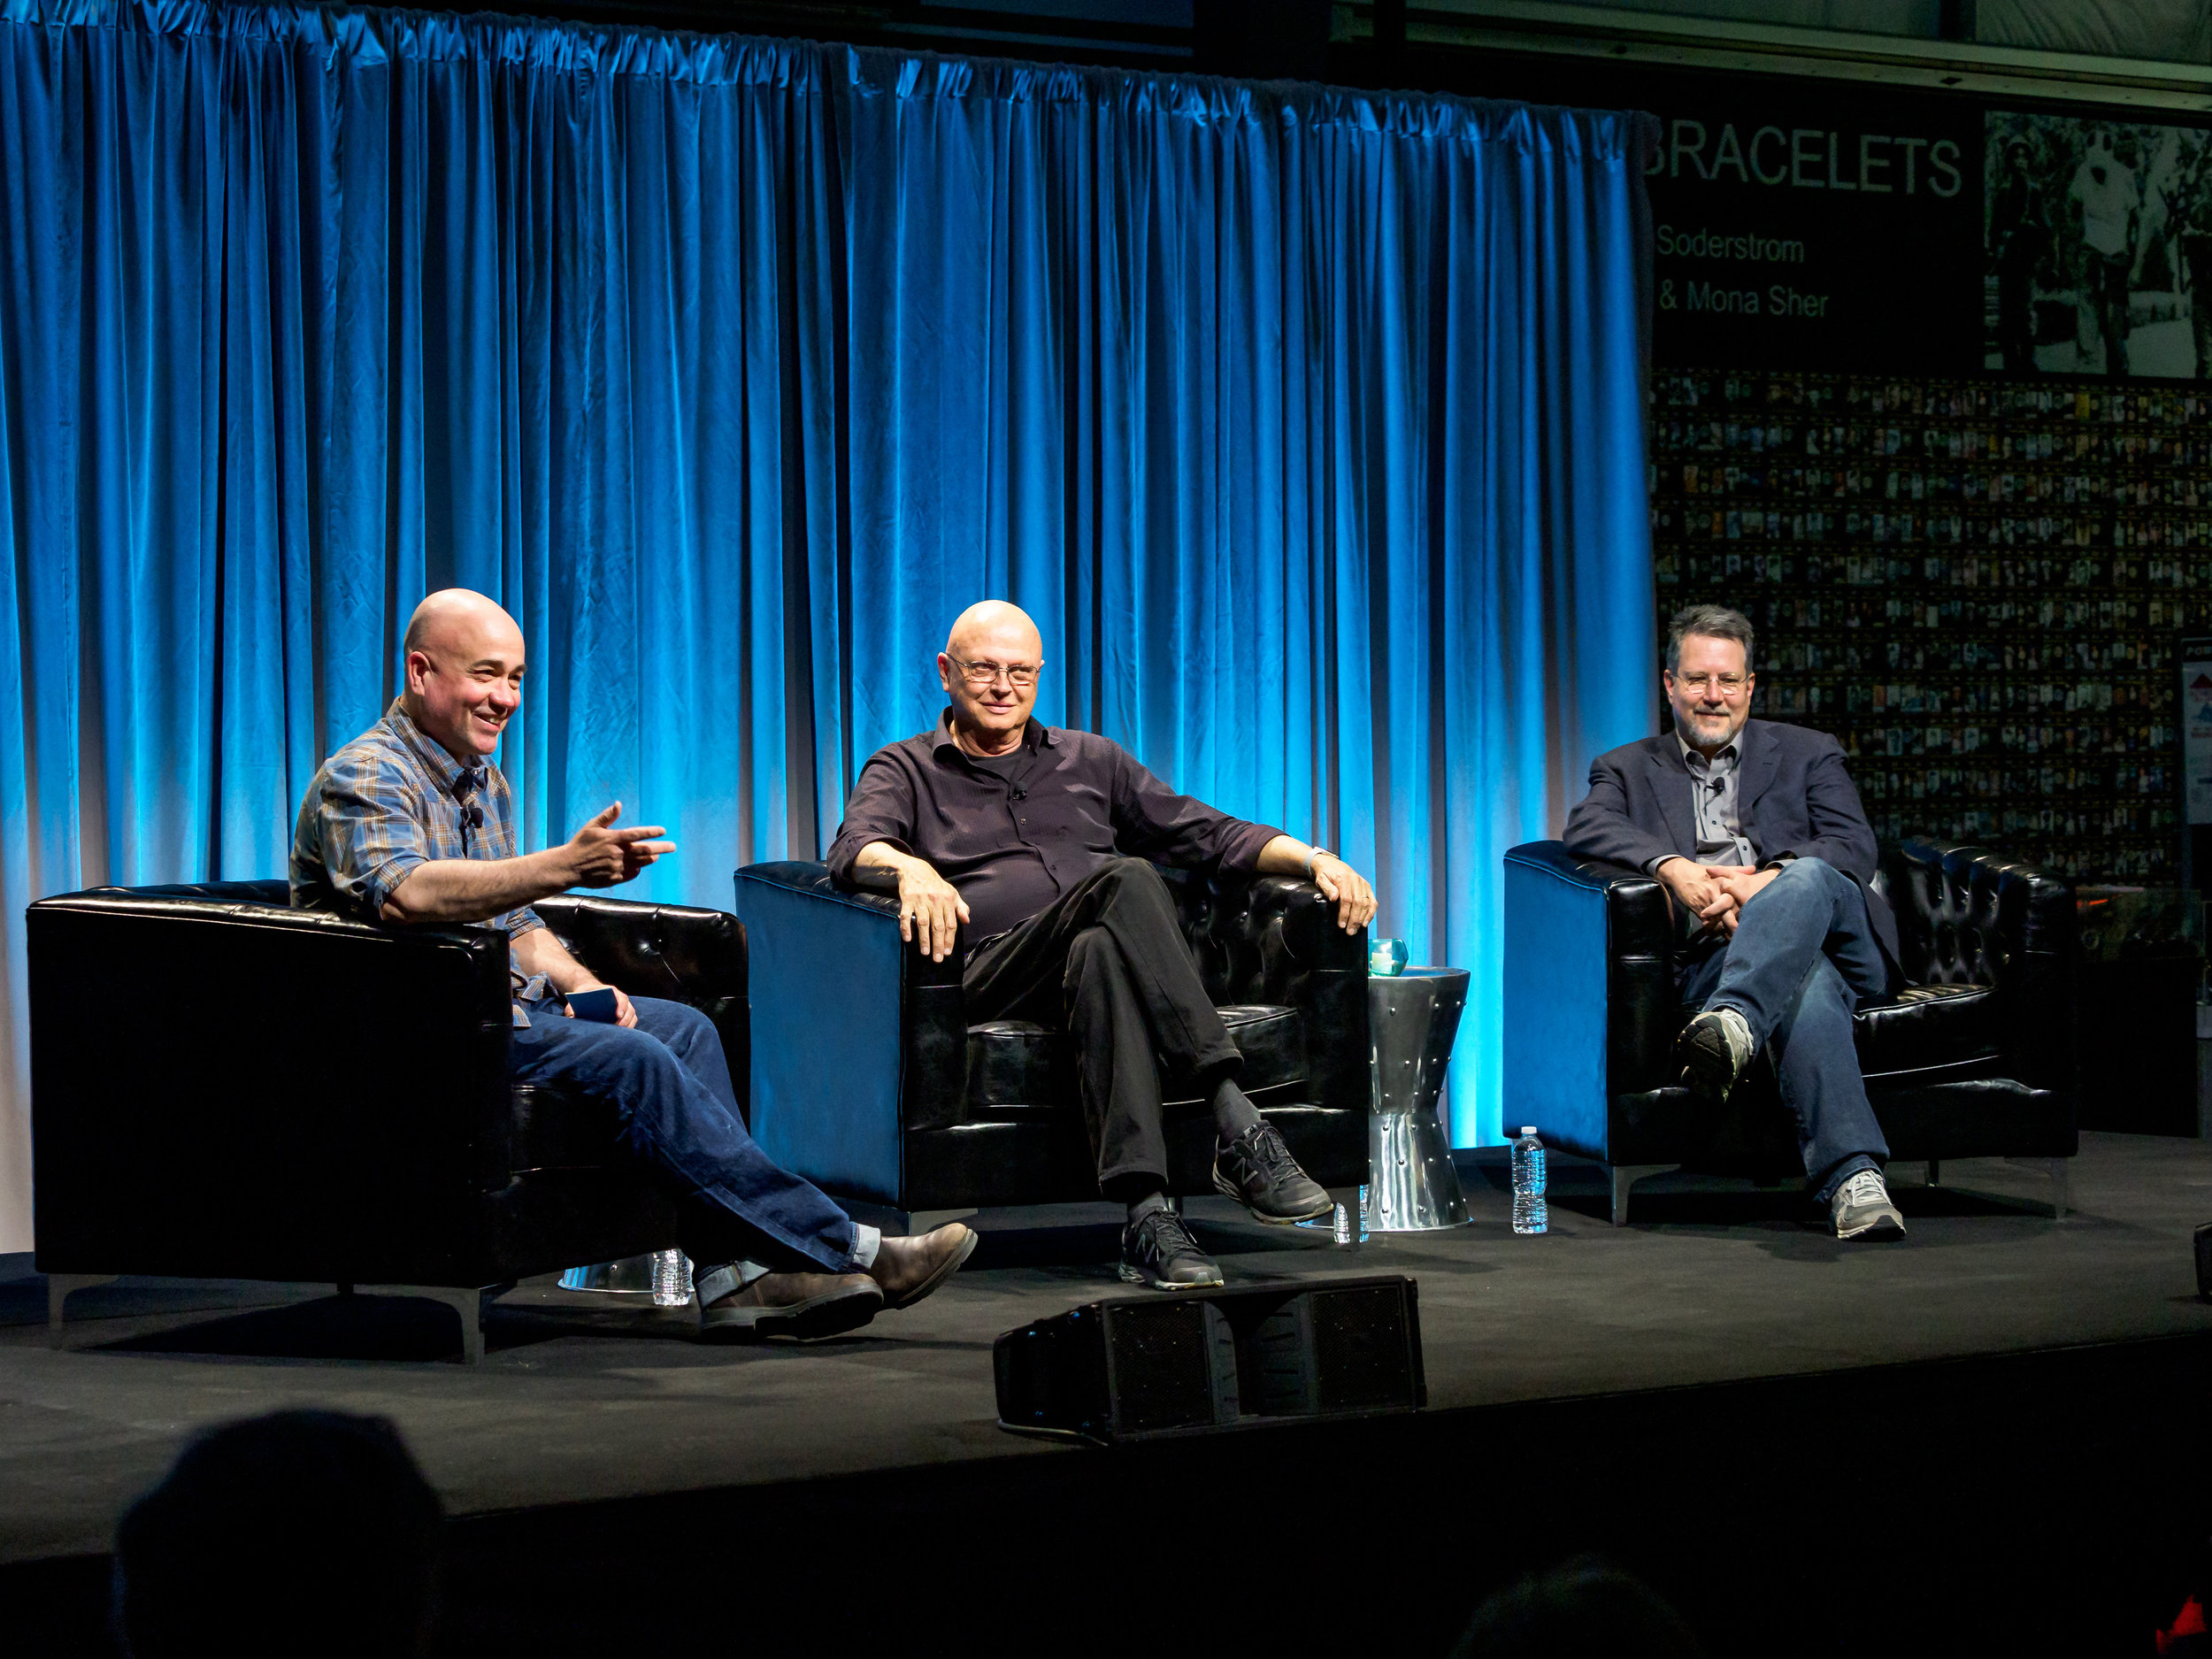 Chatting on stage with Dennis Muren and John Knoll at MARS 2019, Palm Springs, California.